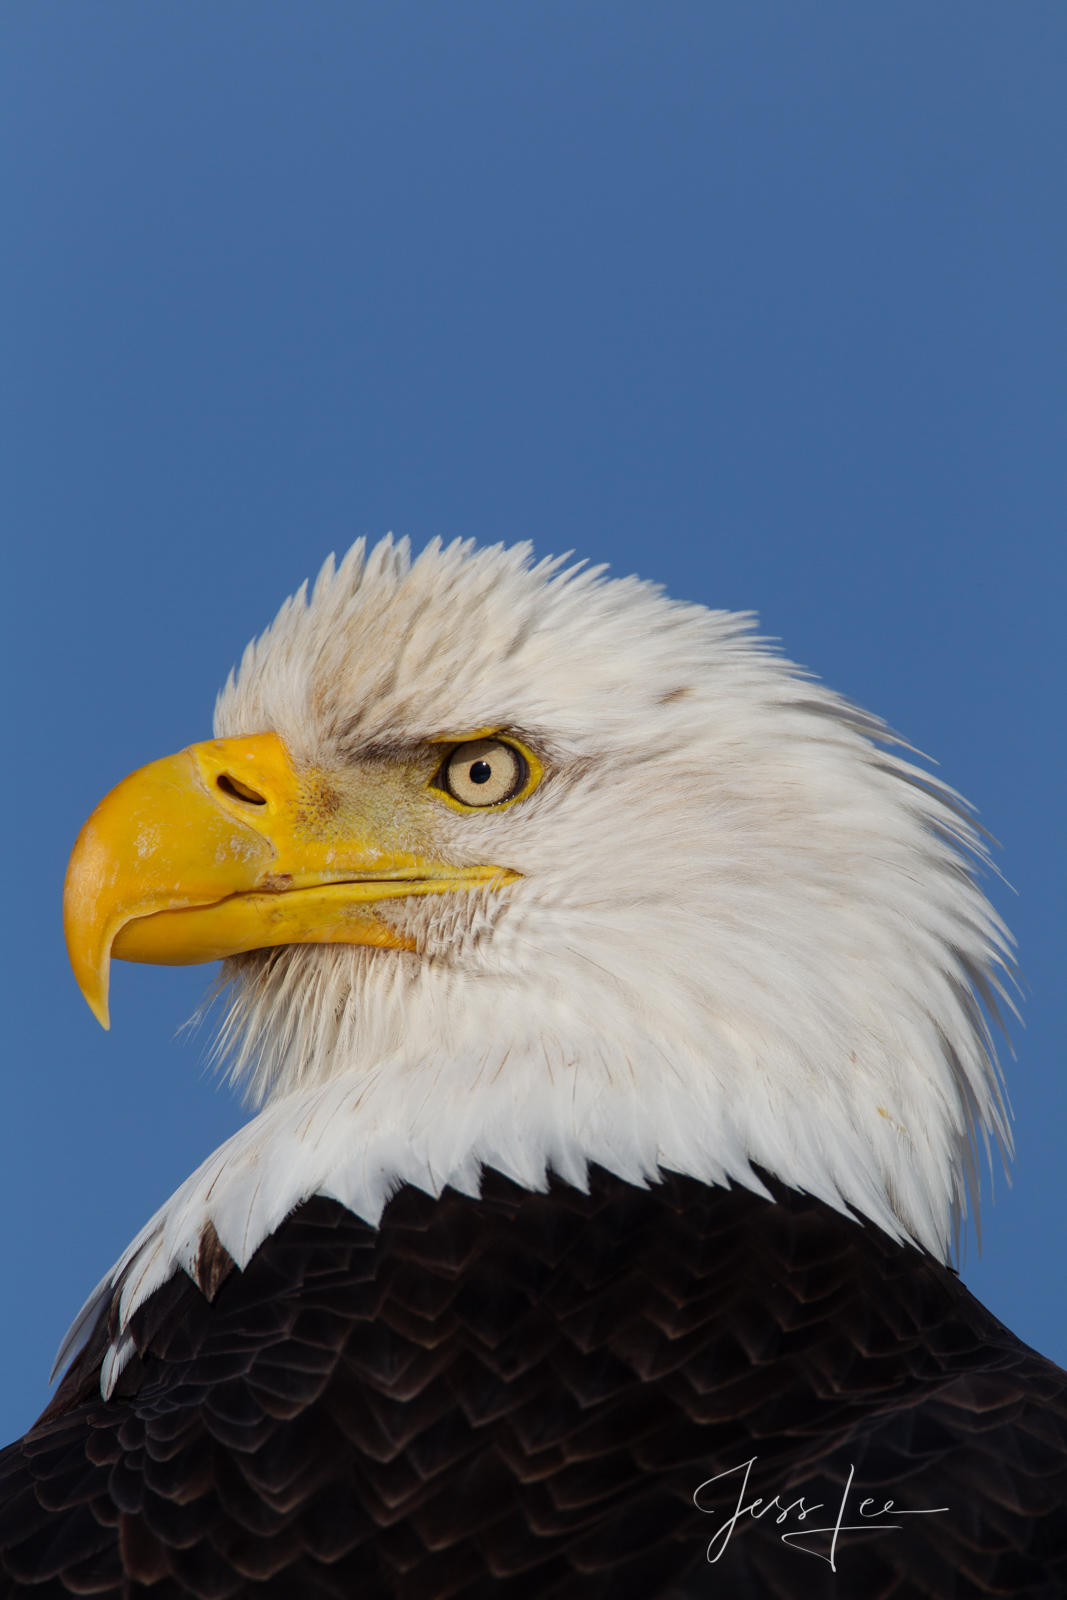 Bring home the power and beauty of the amazing fine art American Bald Eagle photograph What? by Jess Lee from his Wildlife Photography...